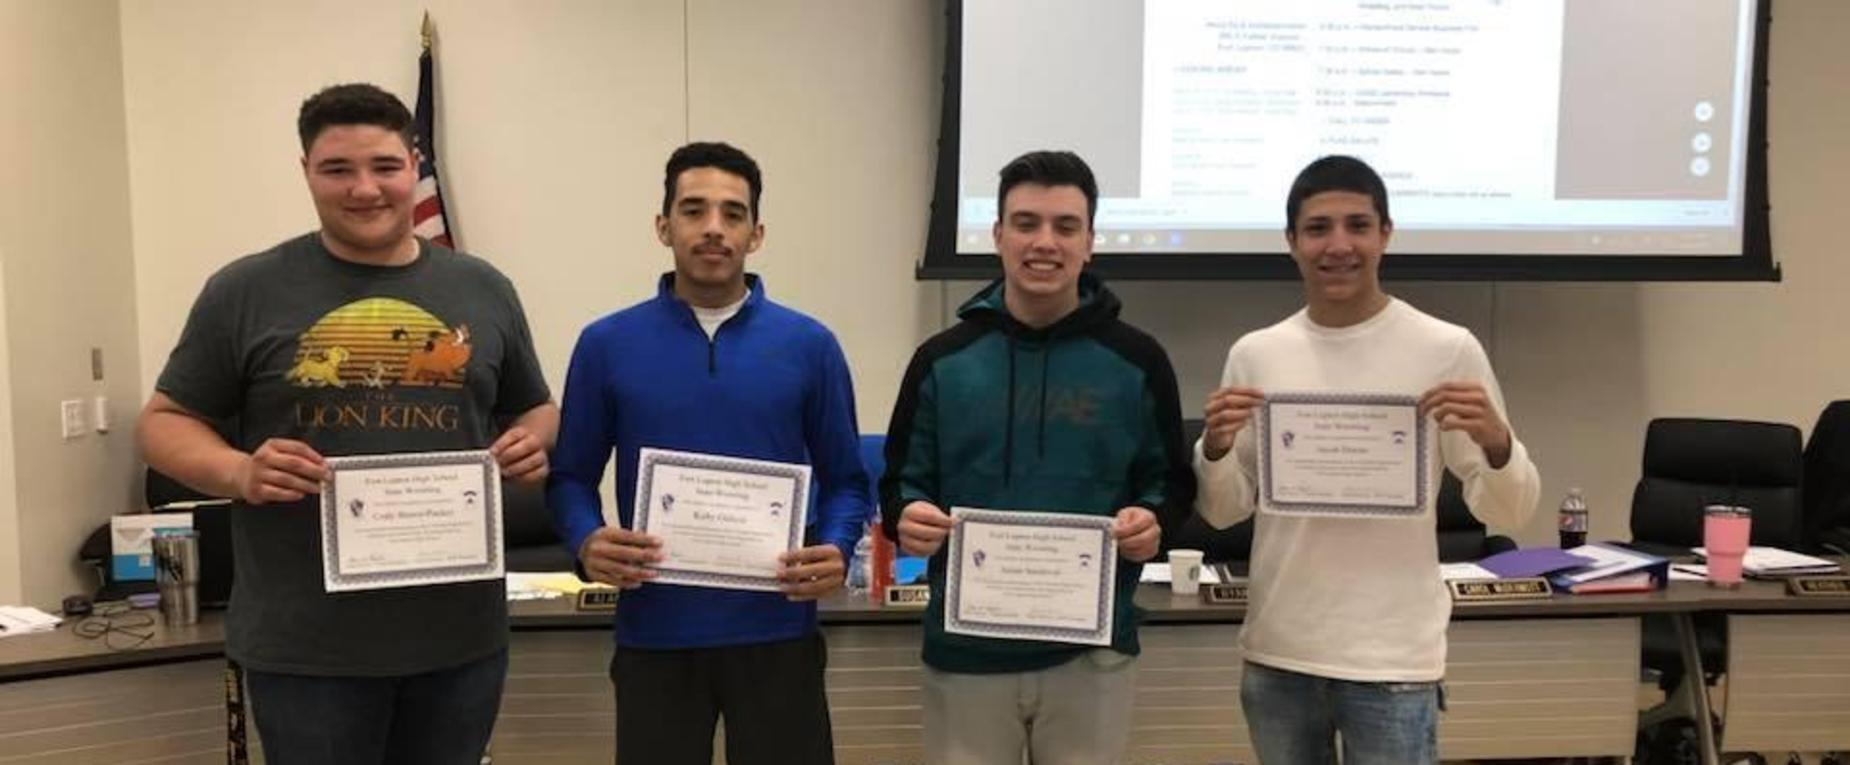 Fort Lupton Wrestlers Honored by the Board of Education